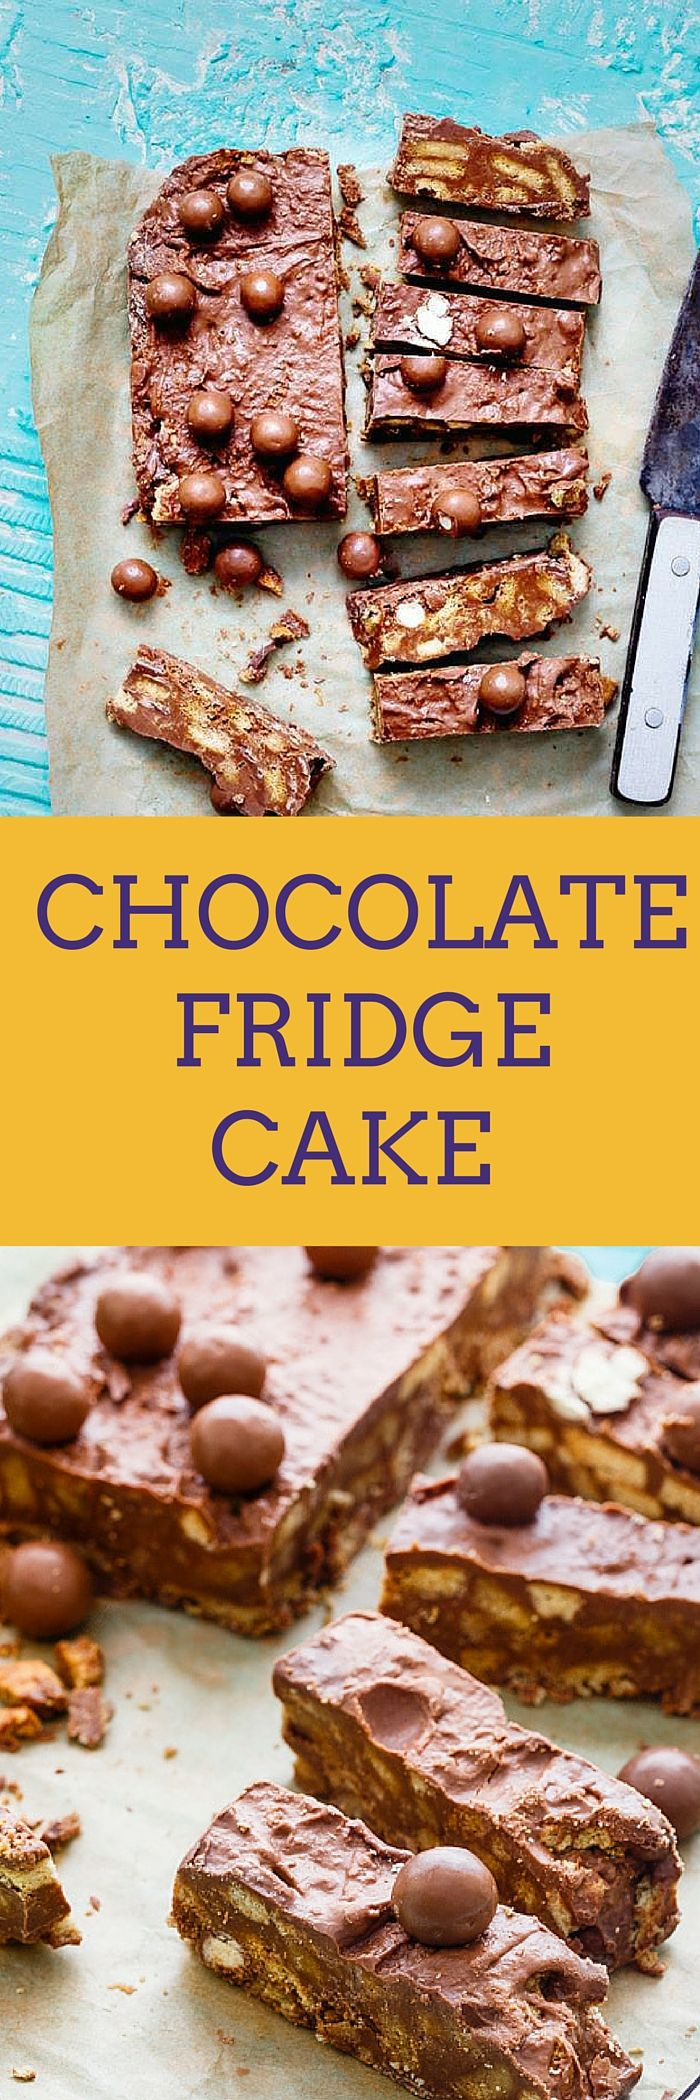 Chocolate Fridge Cake is a No Bake Eggless Cake with loaded indulgence - Chocolates, Easter chocolate eggs, Digestives, Caramel Condensed Milk & Maltesers. Isn't its deliciousness overloaded? It's a kid's friendly recipe. Make sure to get help from the little helpers at home.